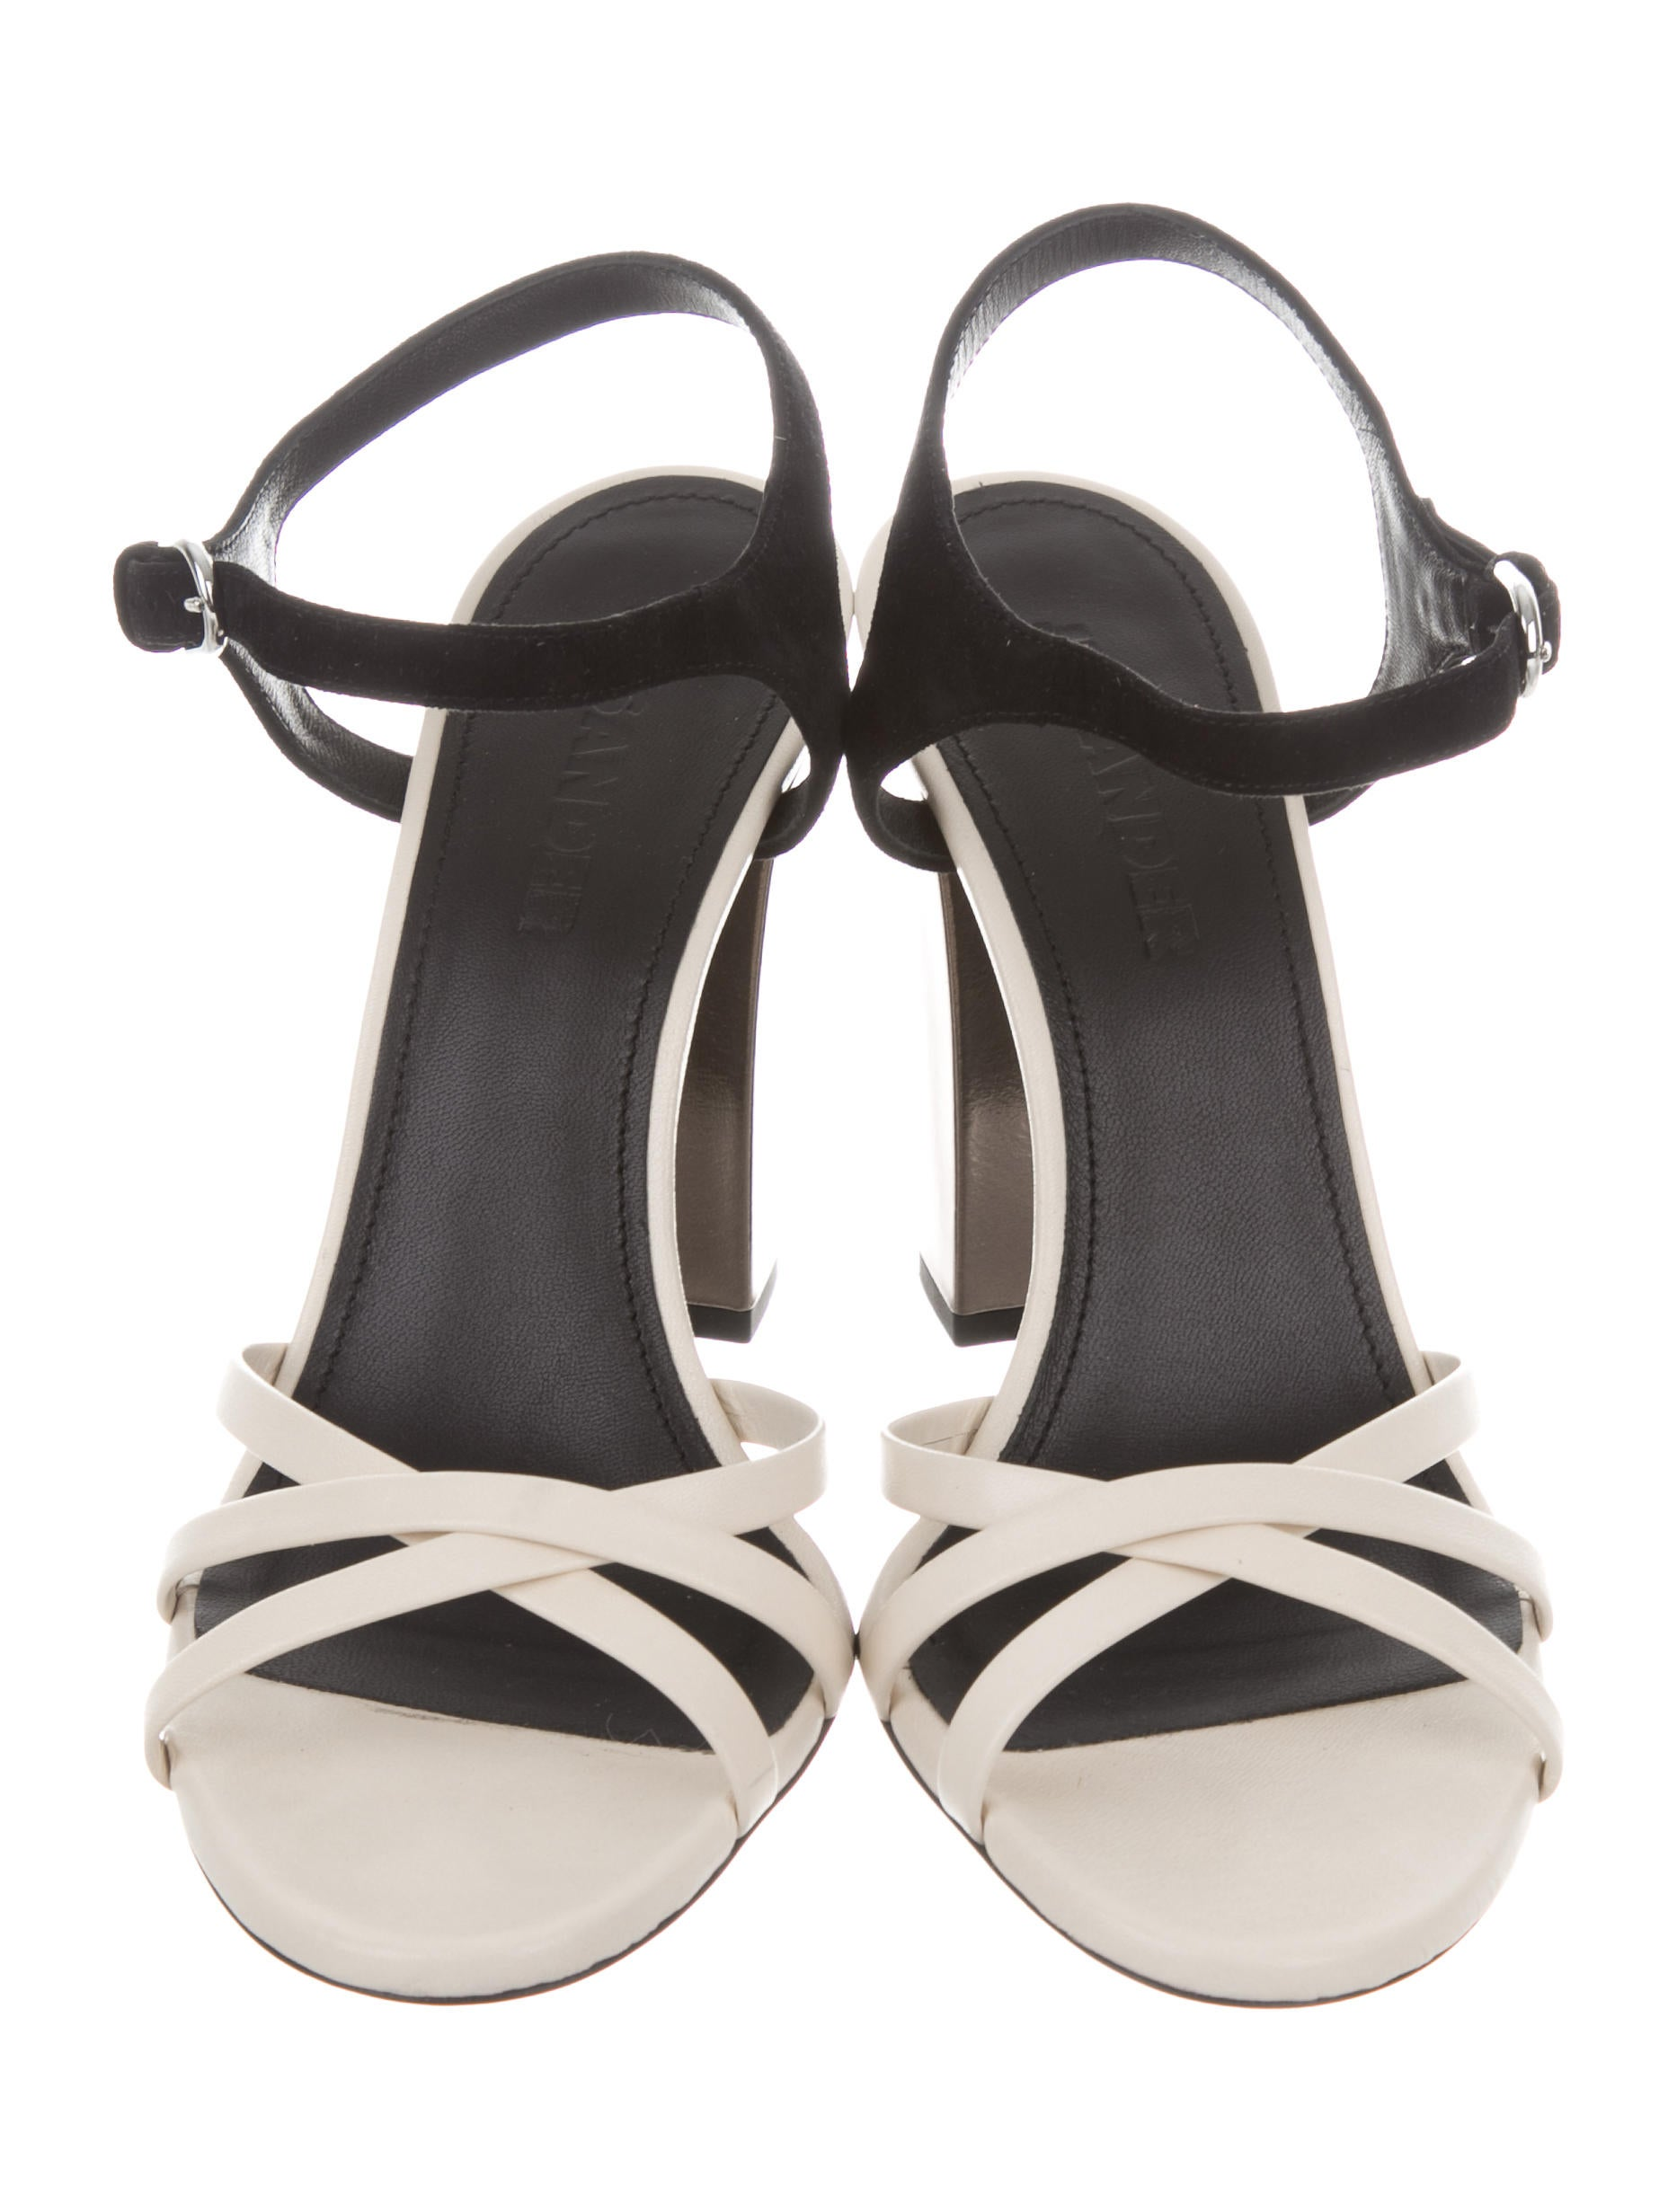 Jil Sander Leather Bicolor Sandals w/ Tags limited edition cheap online cheap sale original buy cheap largest supplier outlet footlocker WkBC2